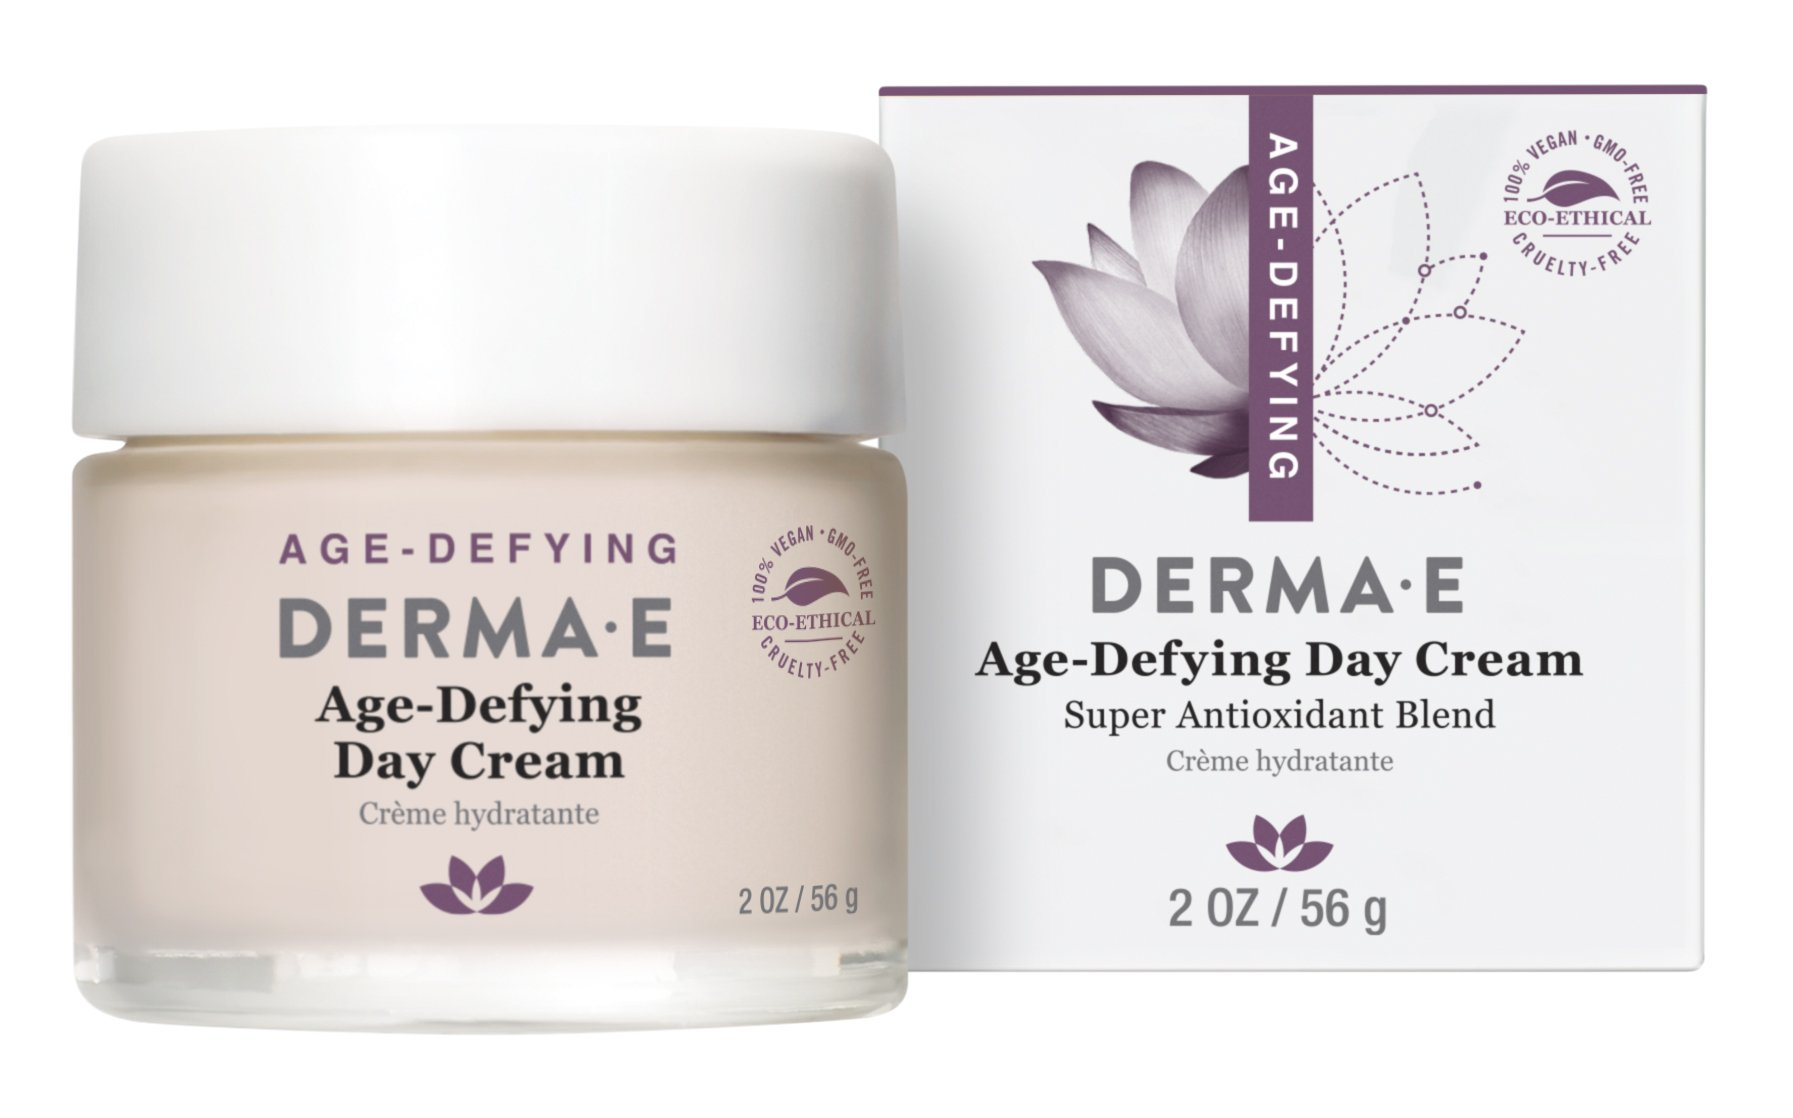 Age-Defying Super Antioxidant Blend Night Cream - 2 oz. by DERMA-E (pack of 1) biotherm homme total recharge non-stop moisturizer 50ml/1.69oz